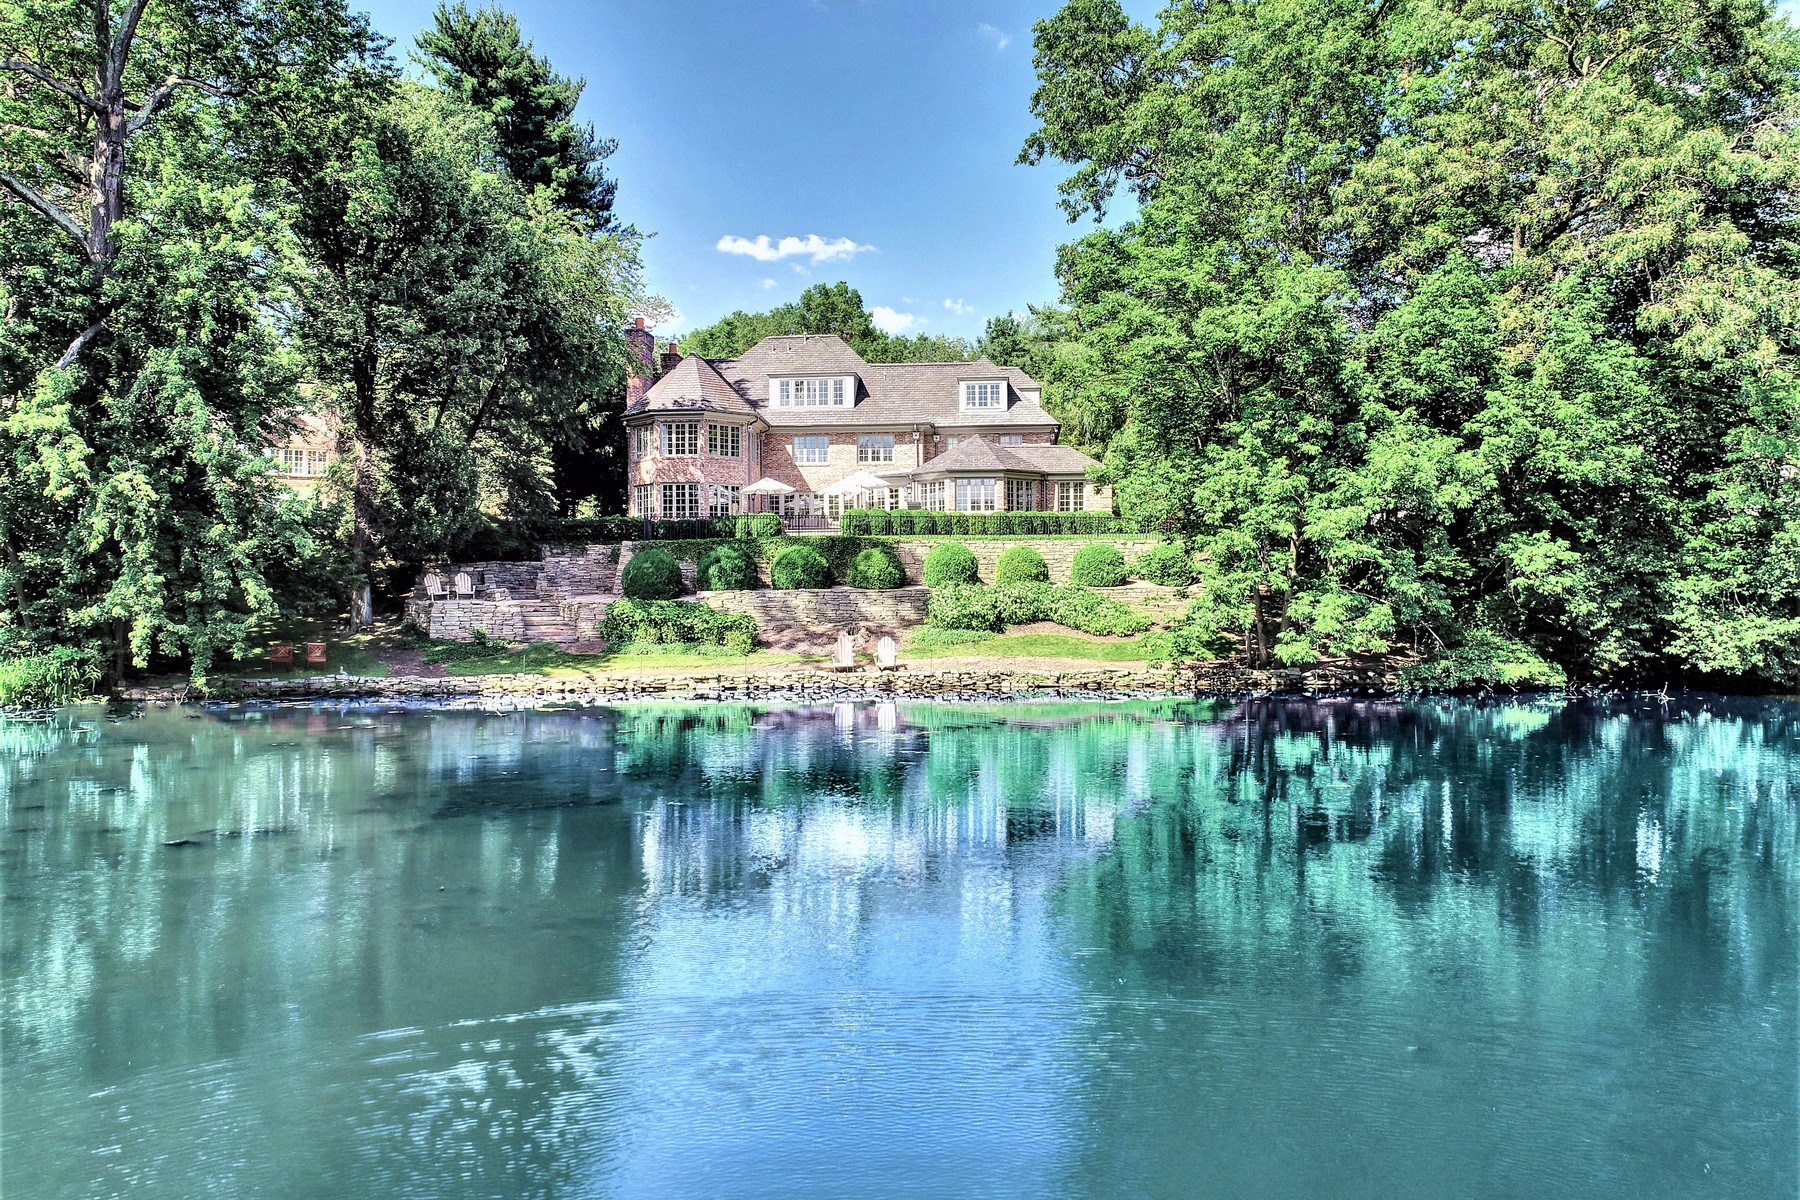 Single Family Homes for Sale at Waterfront Masterpiece 18 Joanna Way, Short Hills, New Jersey 07078 United States